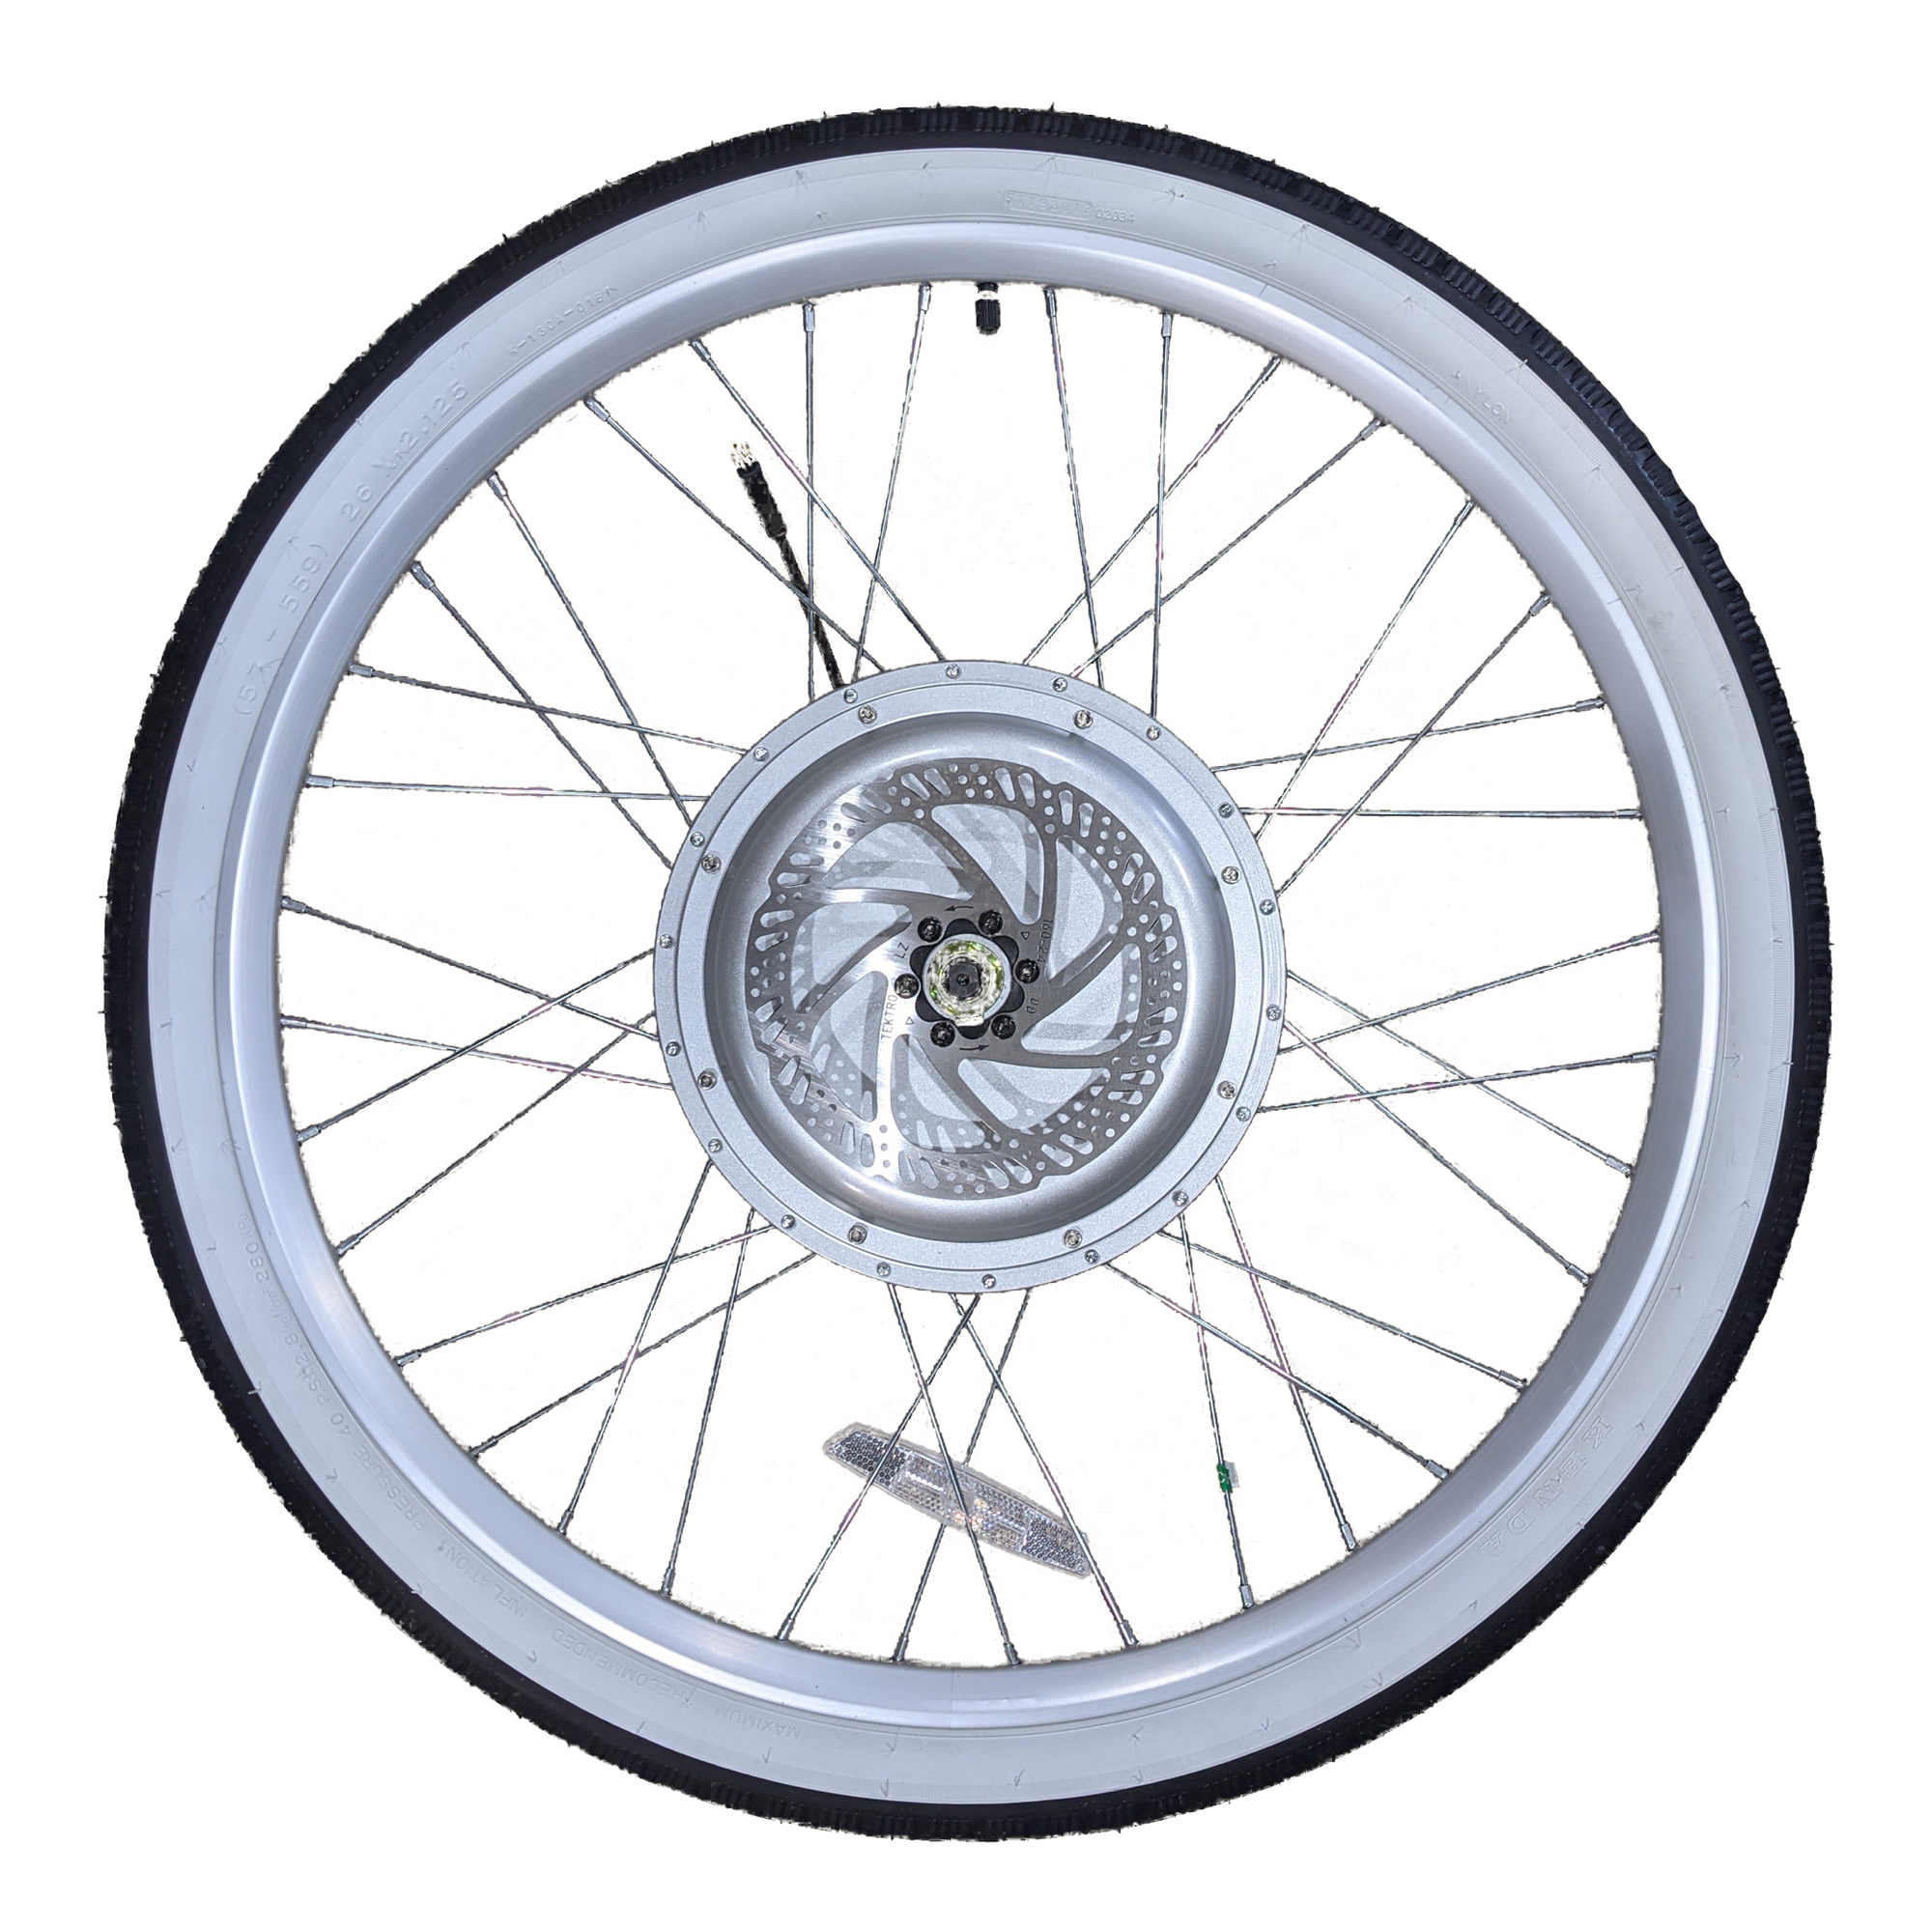 Cruiser Bike Rear Wheel with Tire and Brake